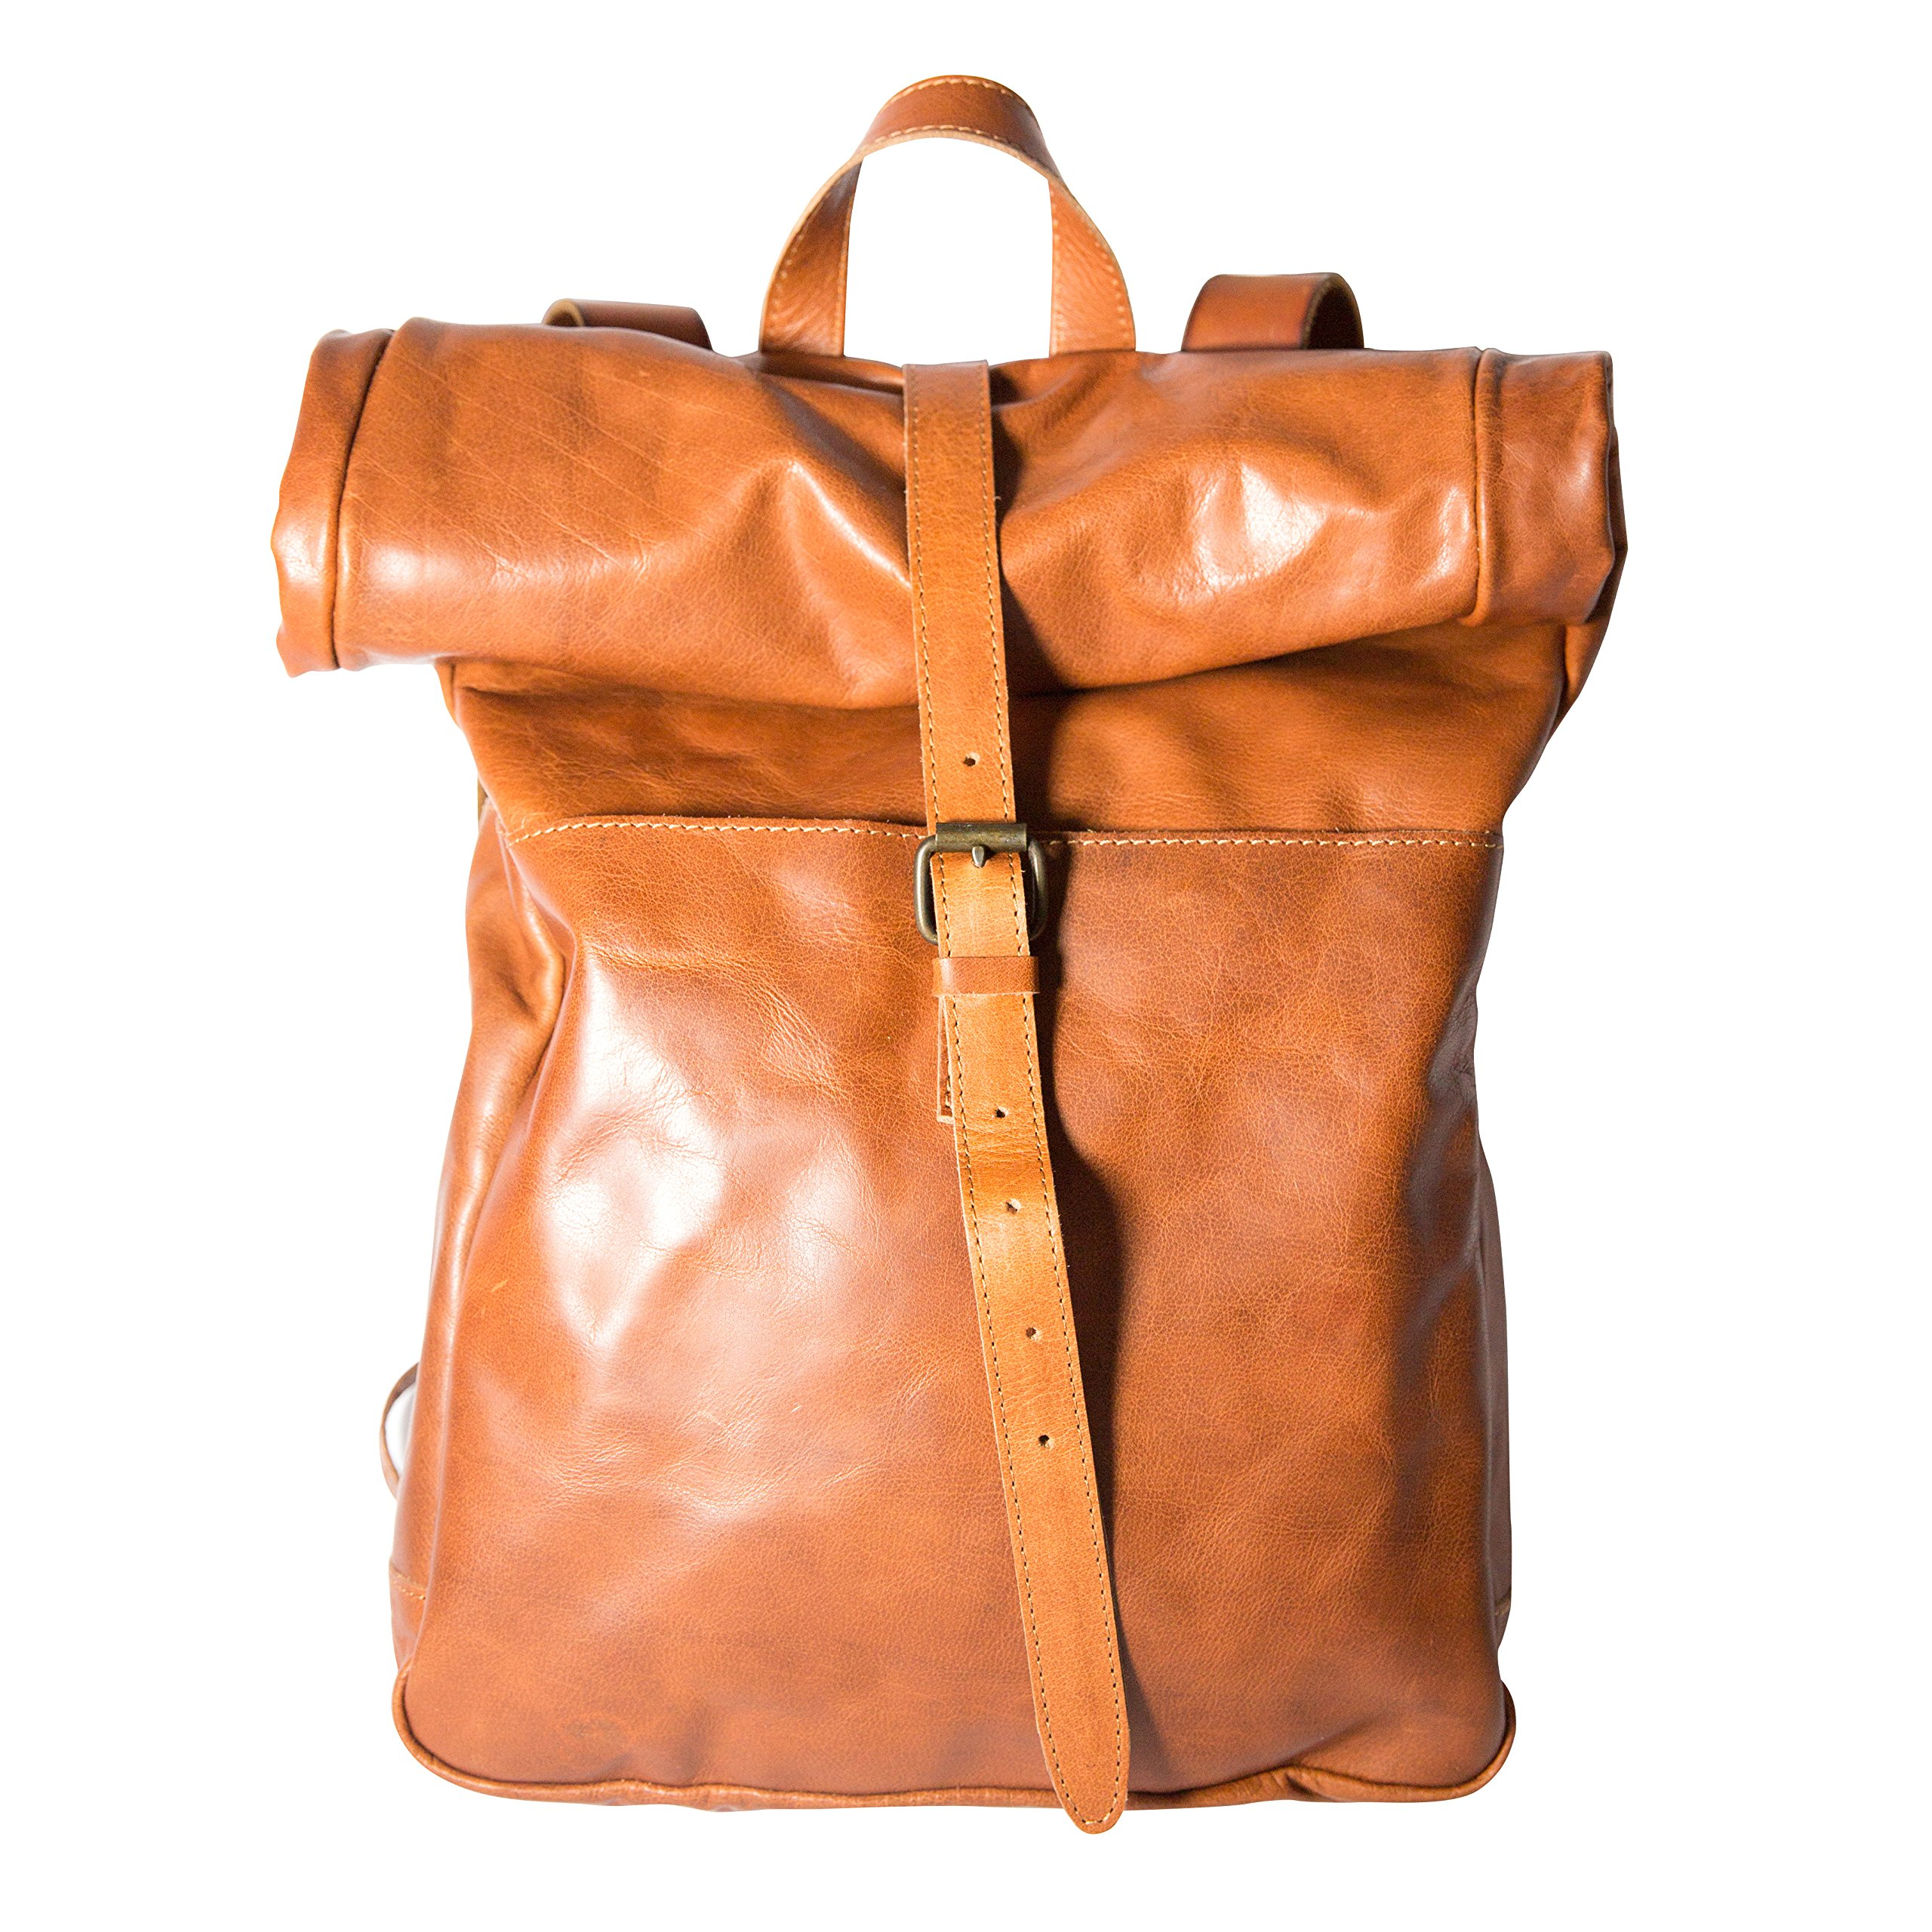 Leather Rolltop Backpack, Vintage Style Bag, Leather Rucksack Travel Backpack by Huxtan (Image #1)